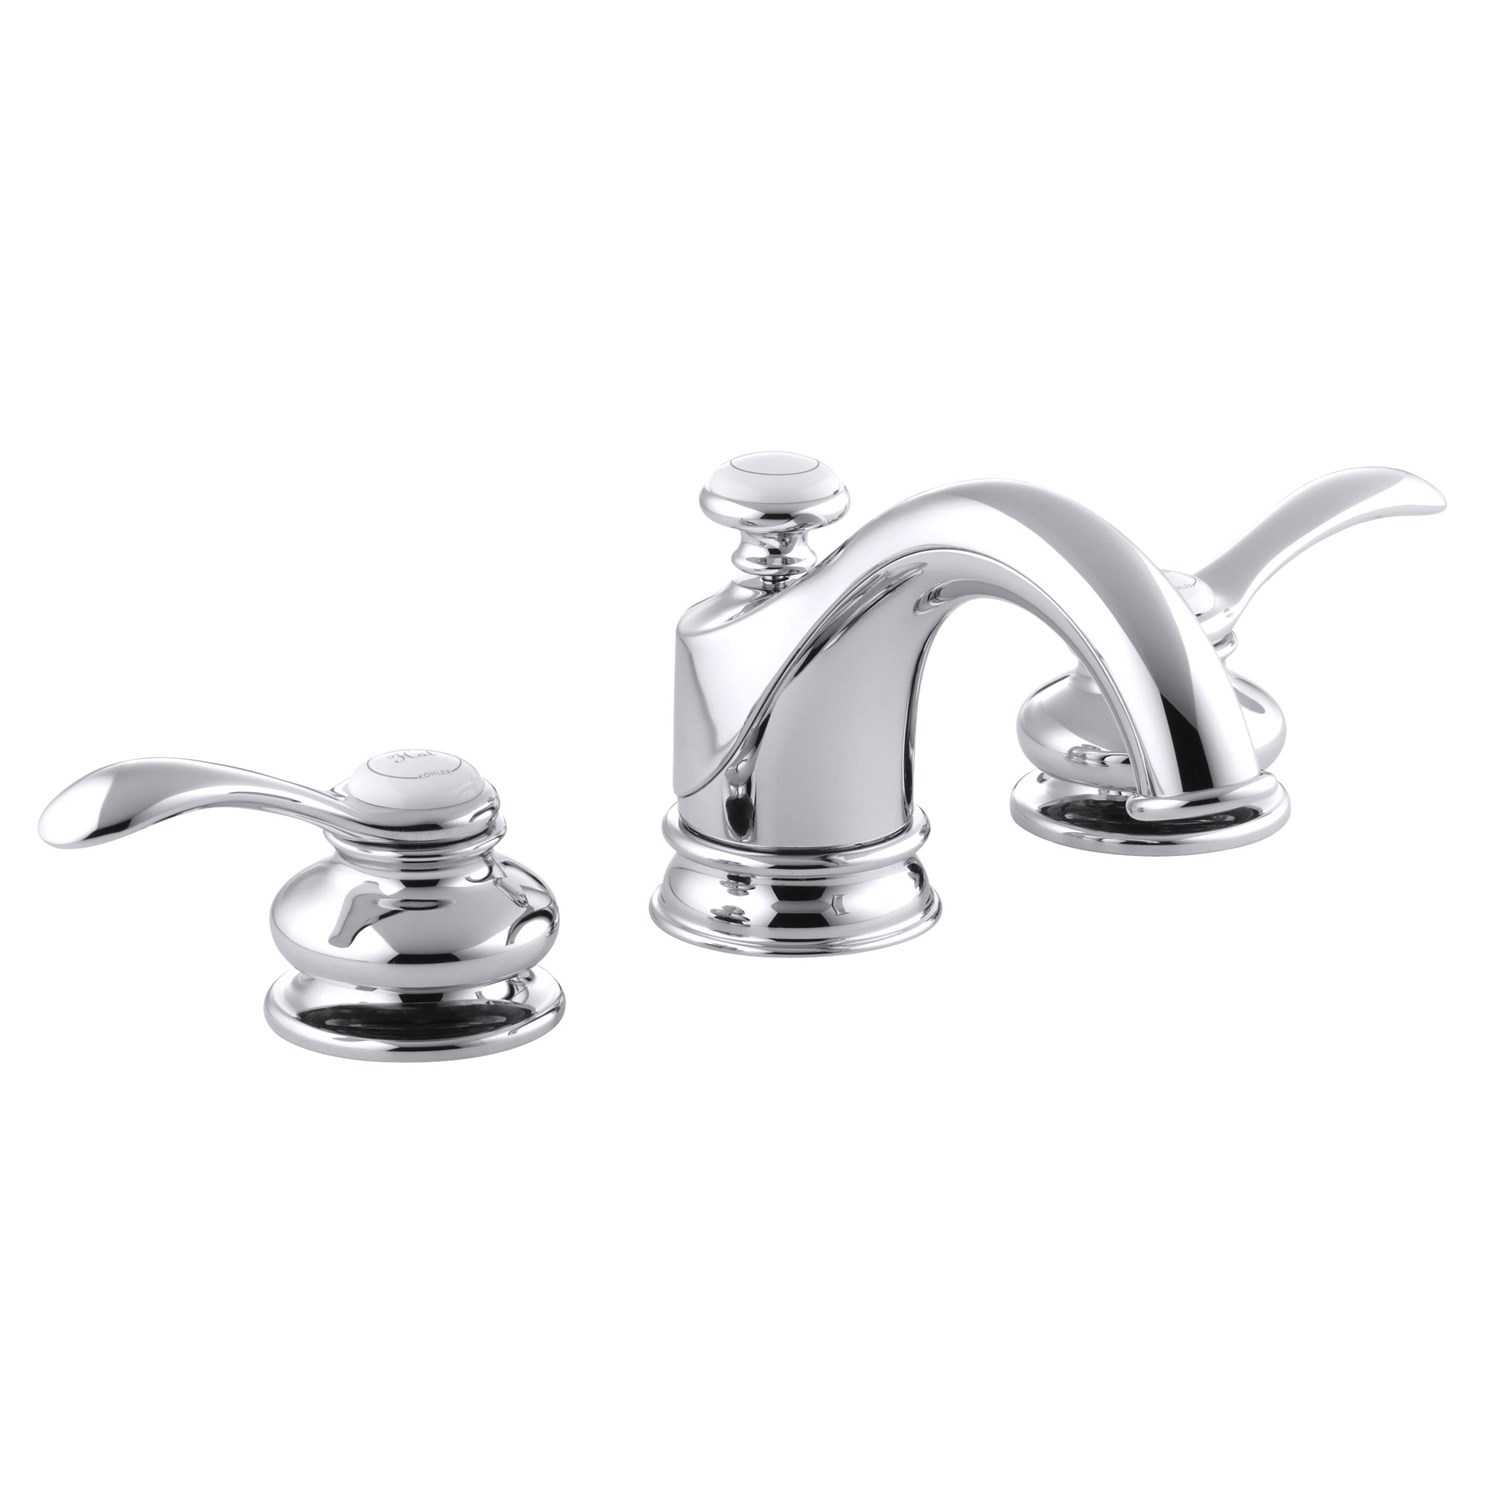 Ideas, top rated bathroom faucets homeclick pertaining to dimensions 1500 x 1500  .